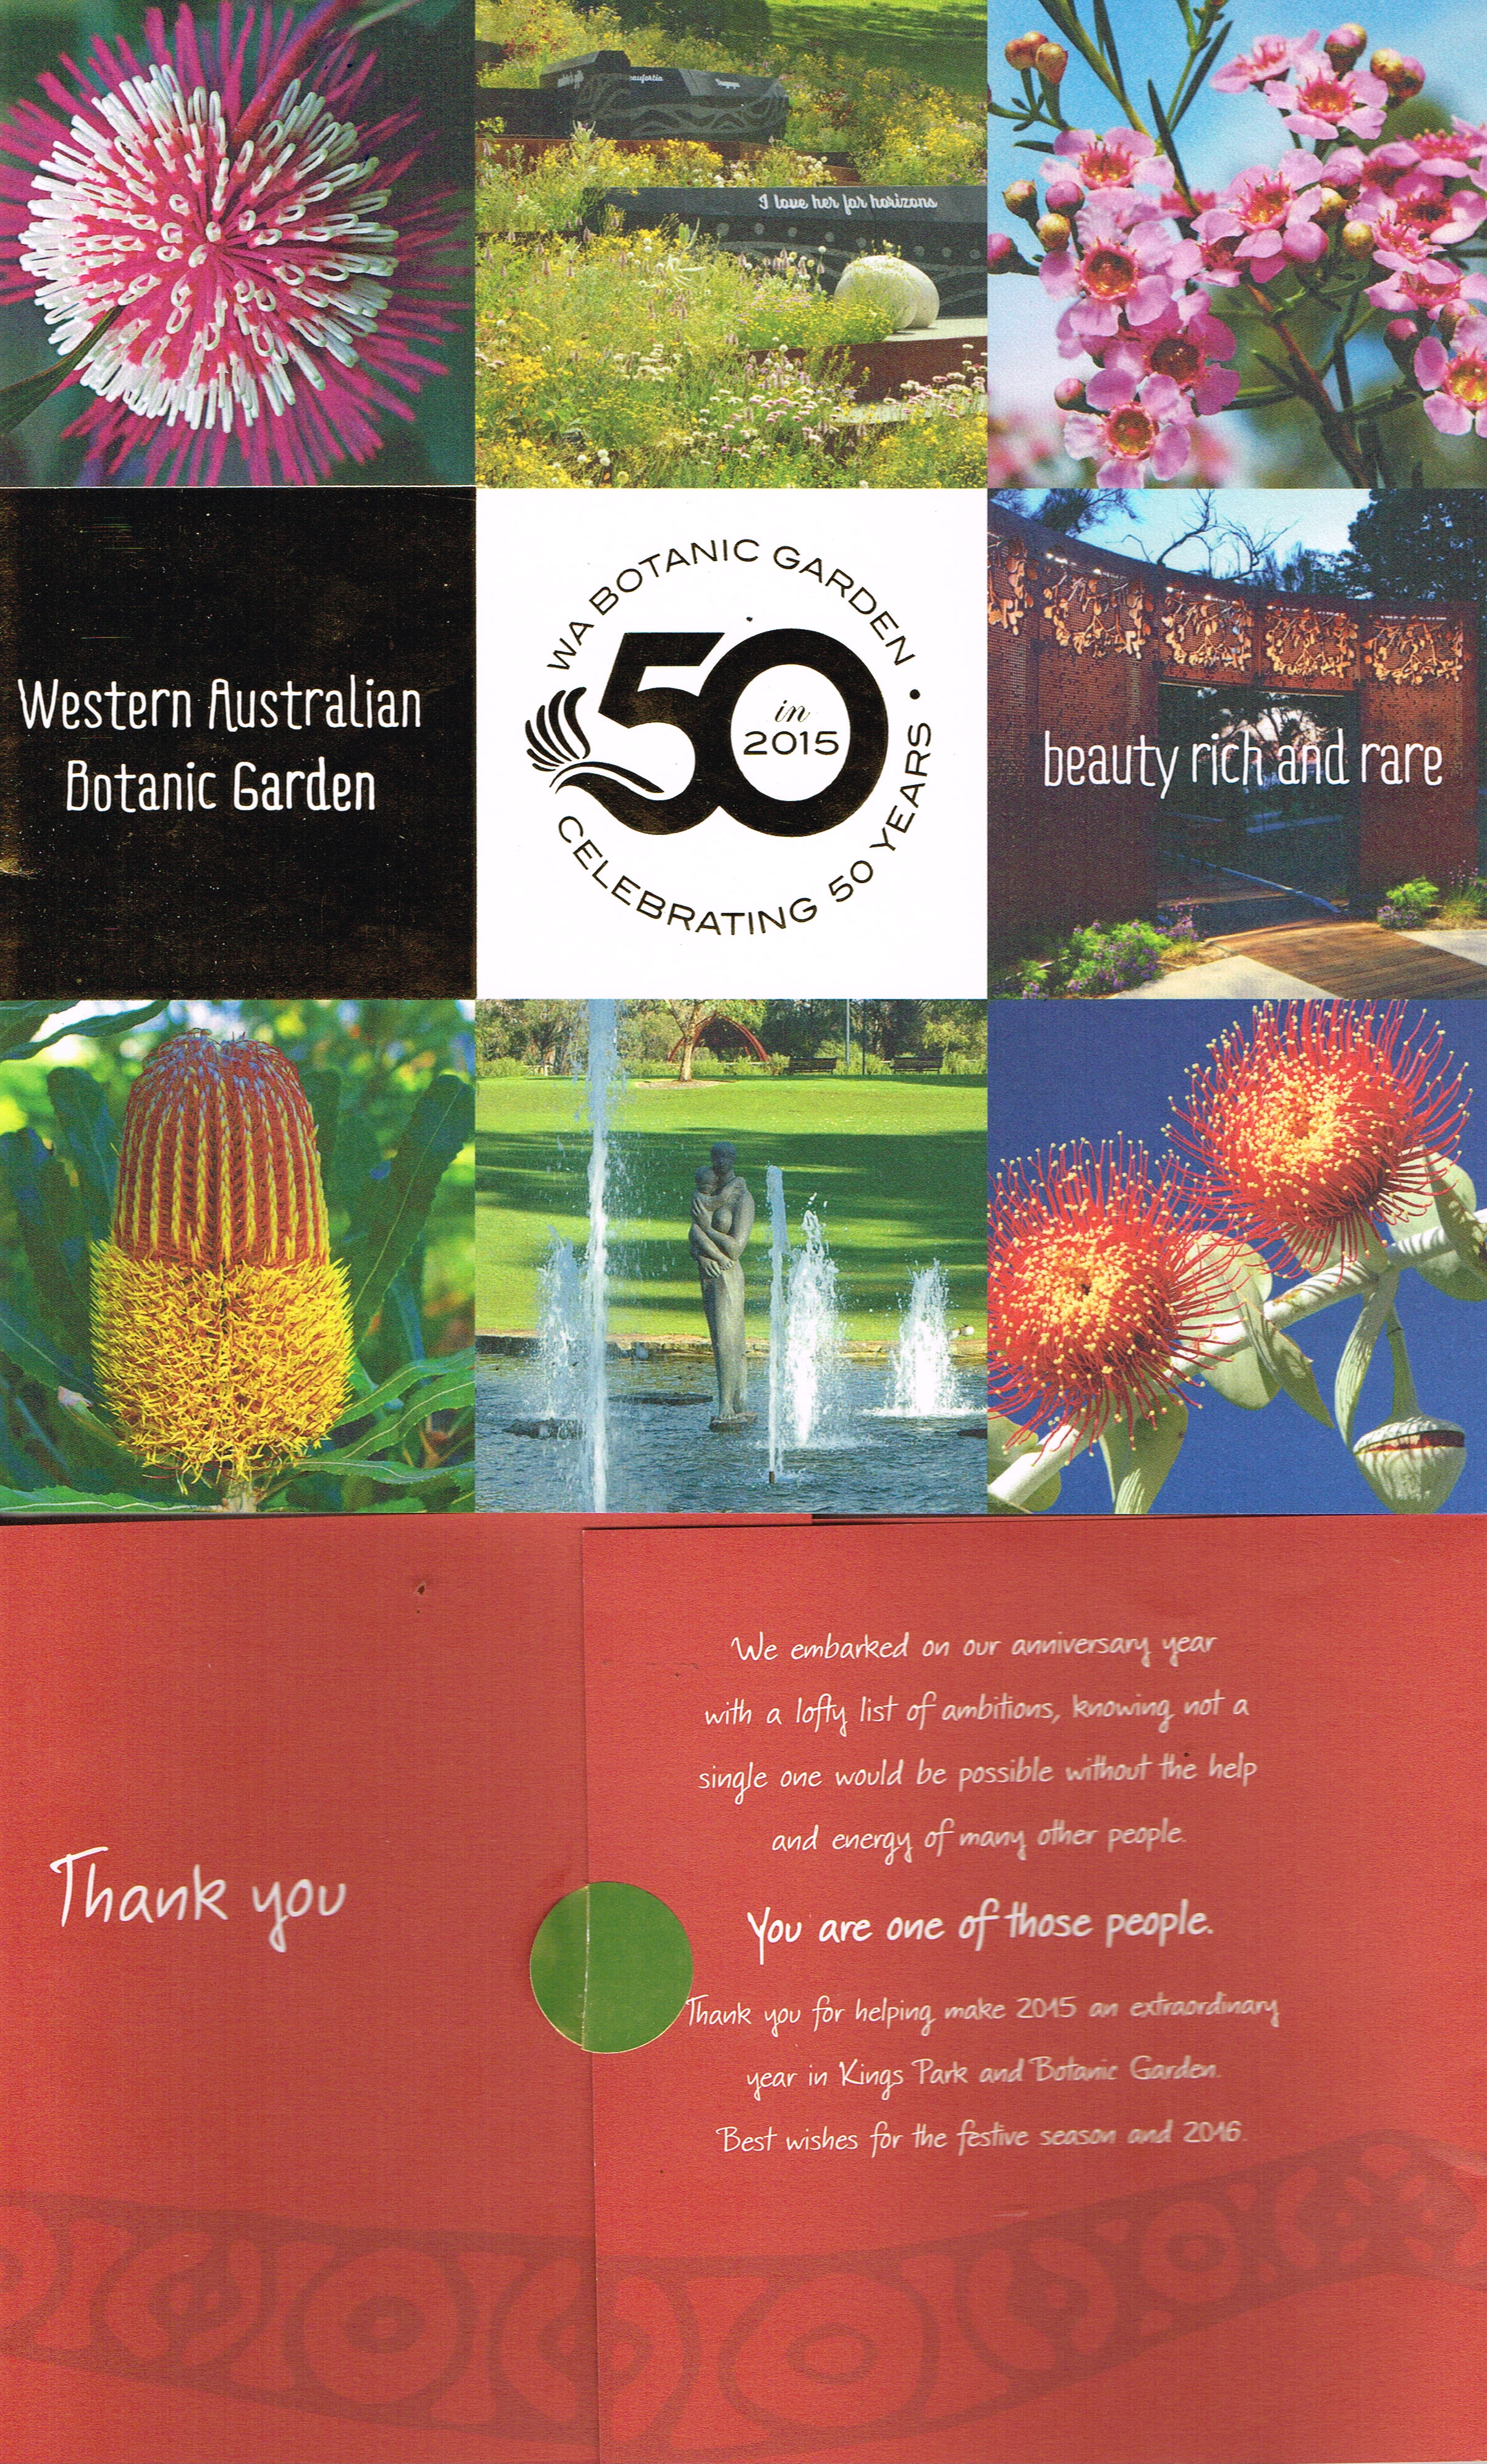 Western Australian Botanic Garden : WA Botanic Garden Celebrating 50 Years   Government of Western Australia and Kings Park & Botanic Garden, Botanic Gardens & Parks Authority